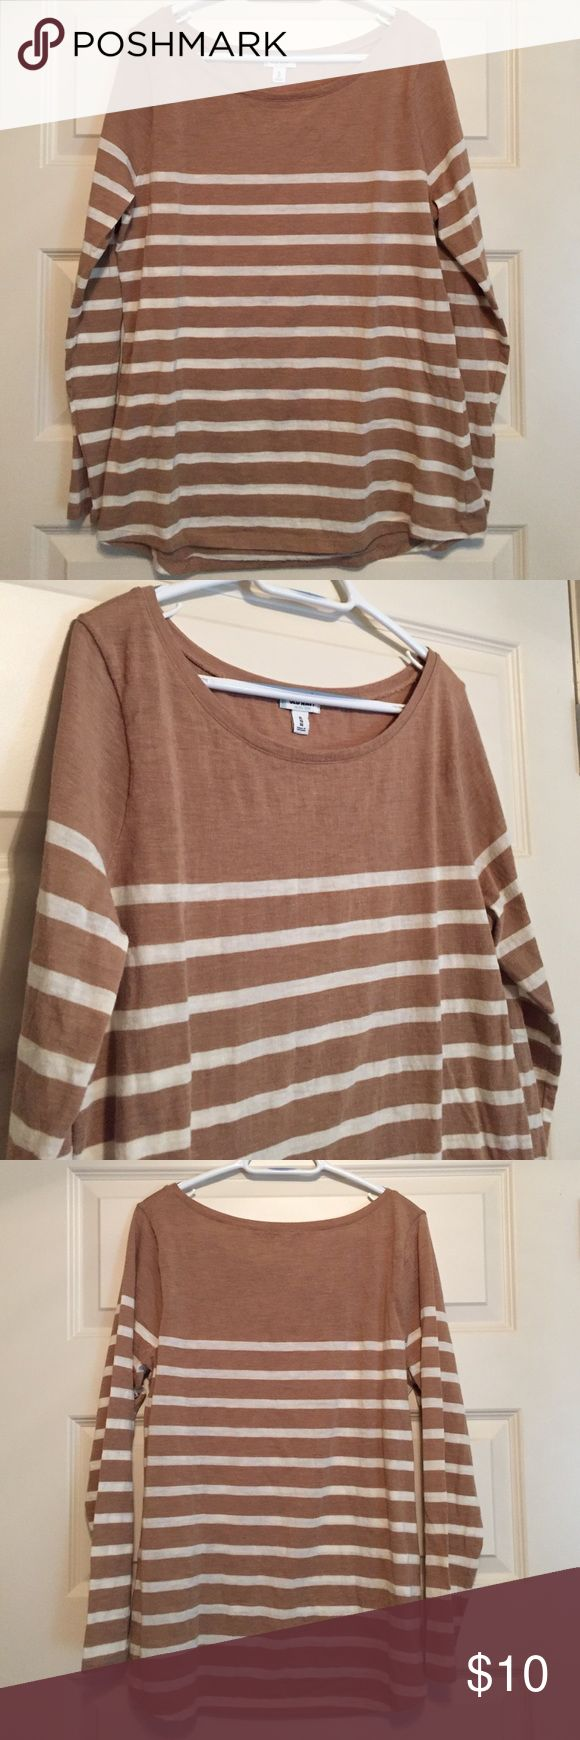 Women's striped top Women's boat neck tan and cream striped shirt. Washed but never worn. Size extra large. Bundle 2 or more items and save 15% plus combined shipping! Old Navy Tops